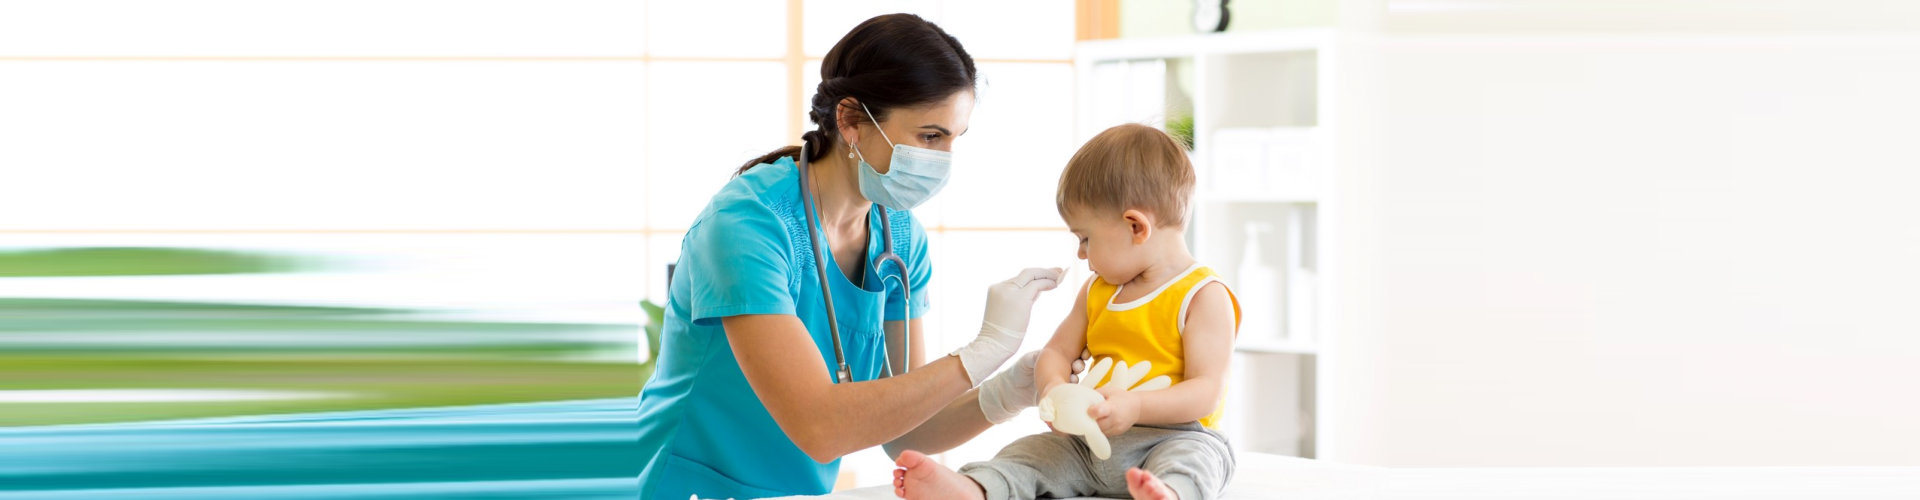 nurse administering vaccine to the child